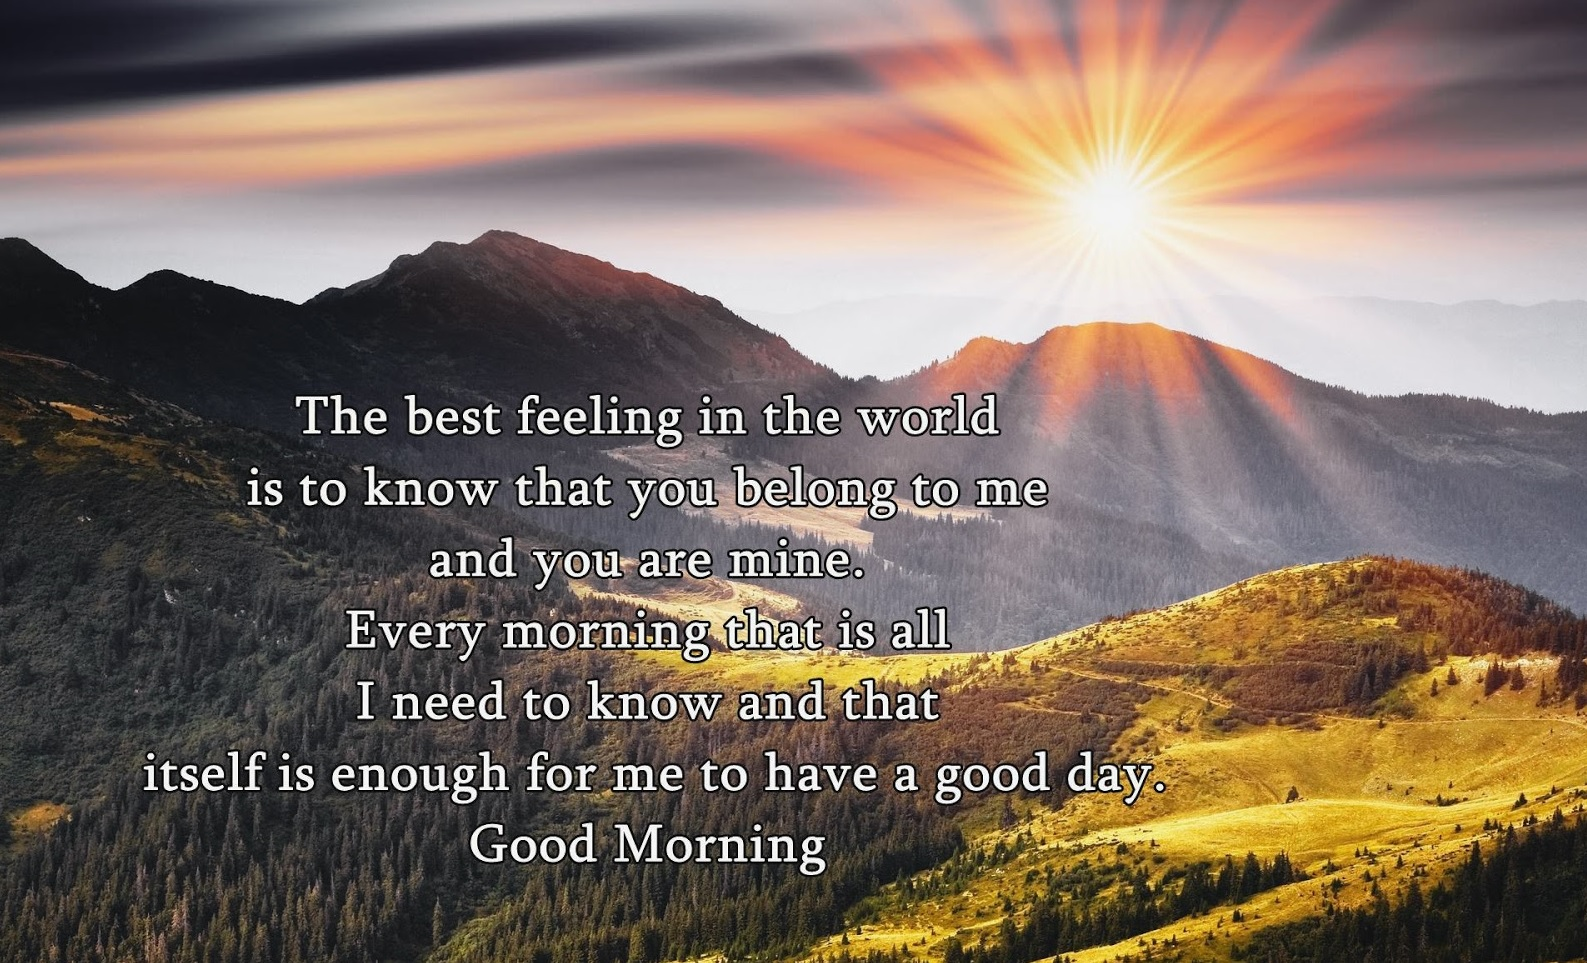 Good Morning Sweetheart Quotes: Good Morning Quotes For Her